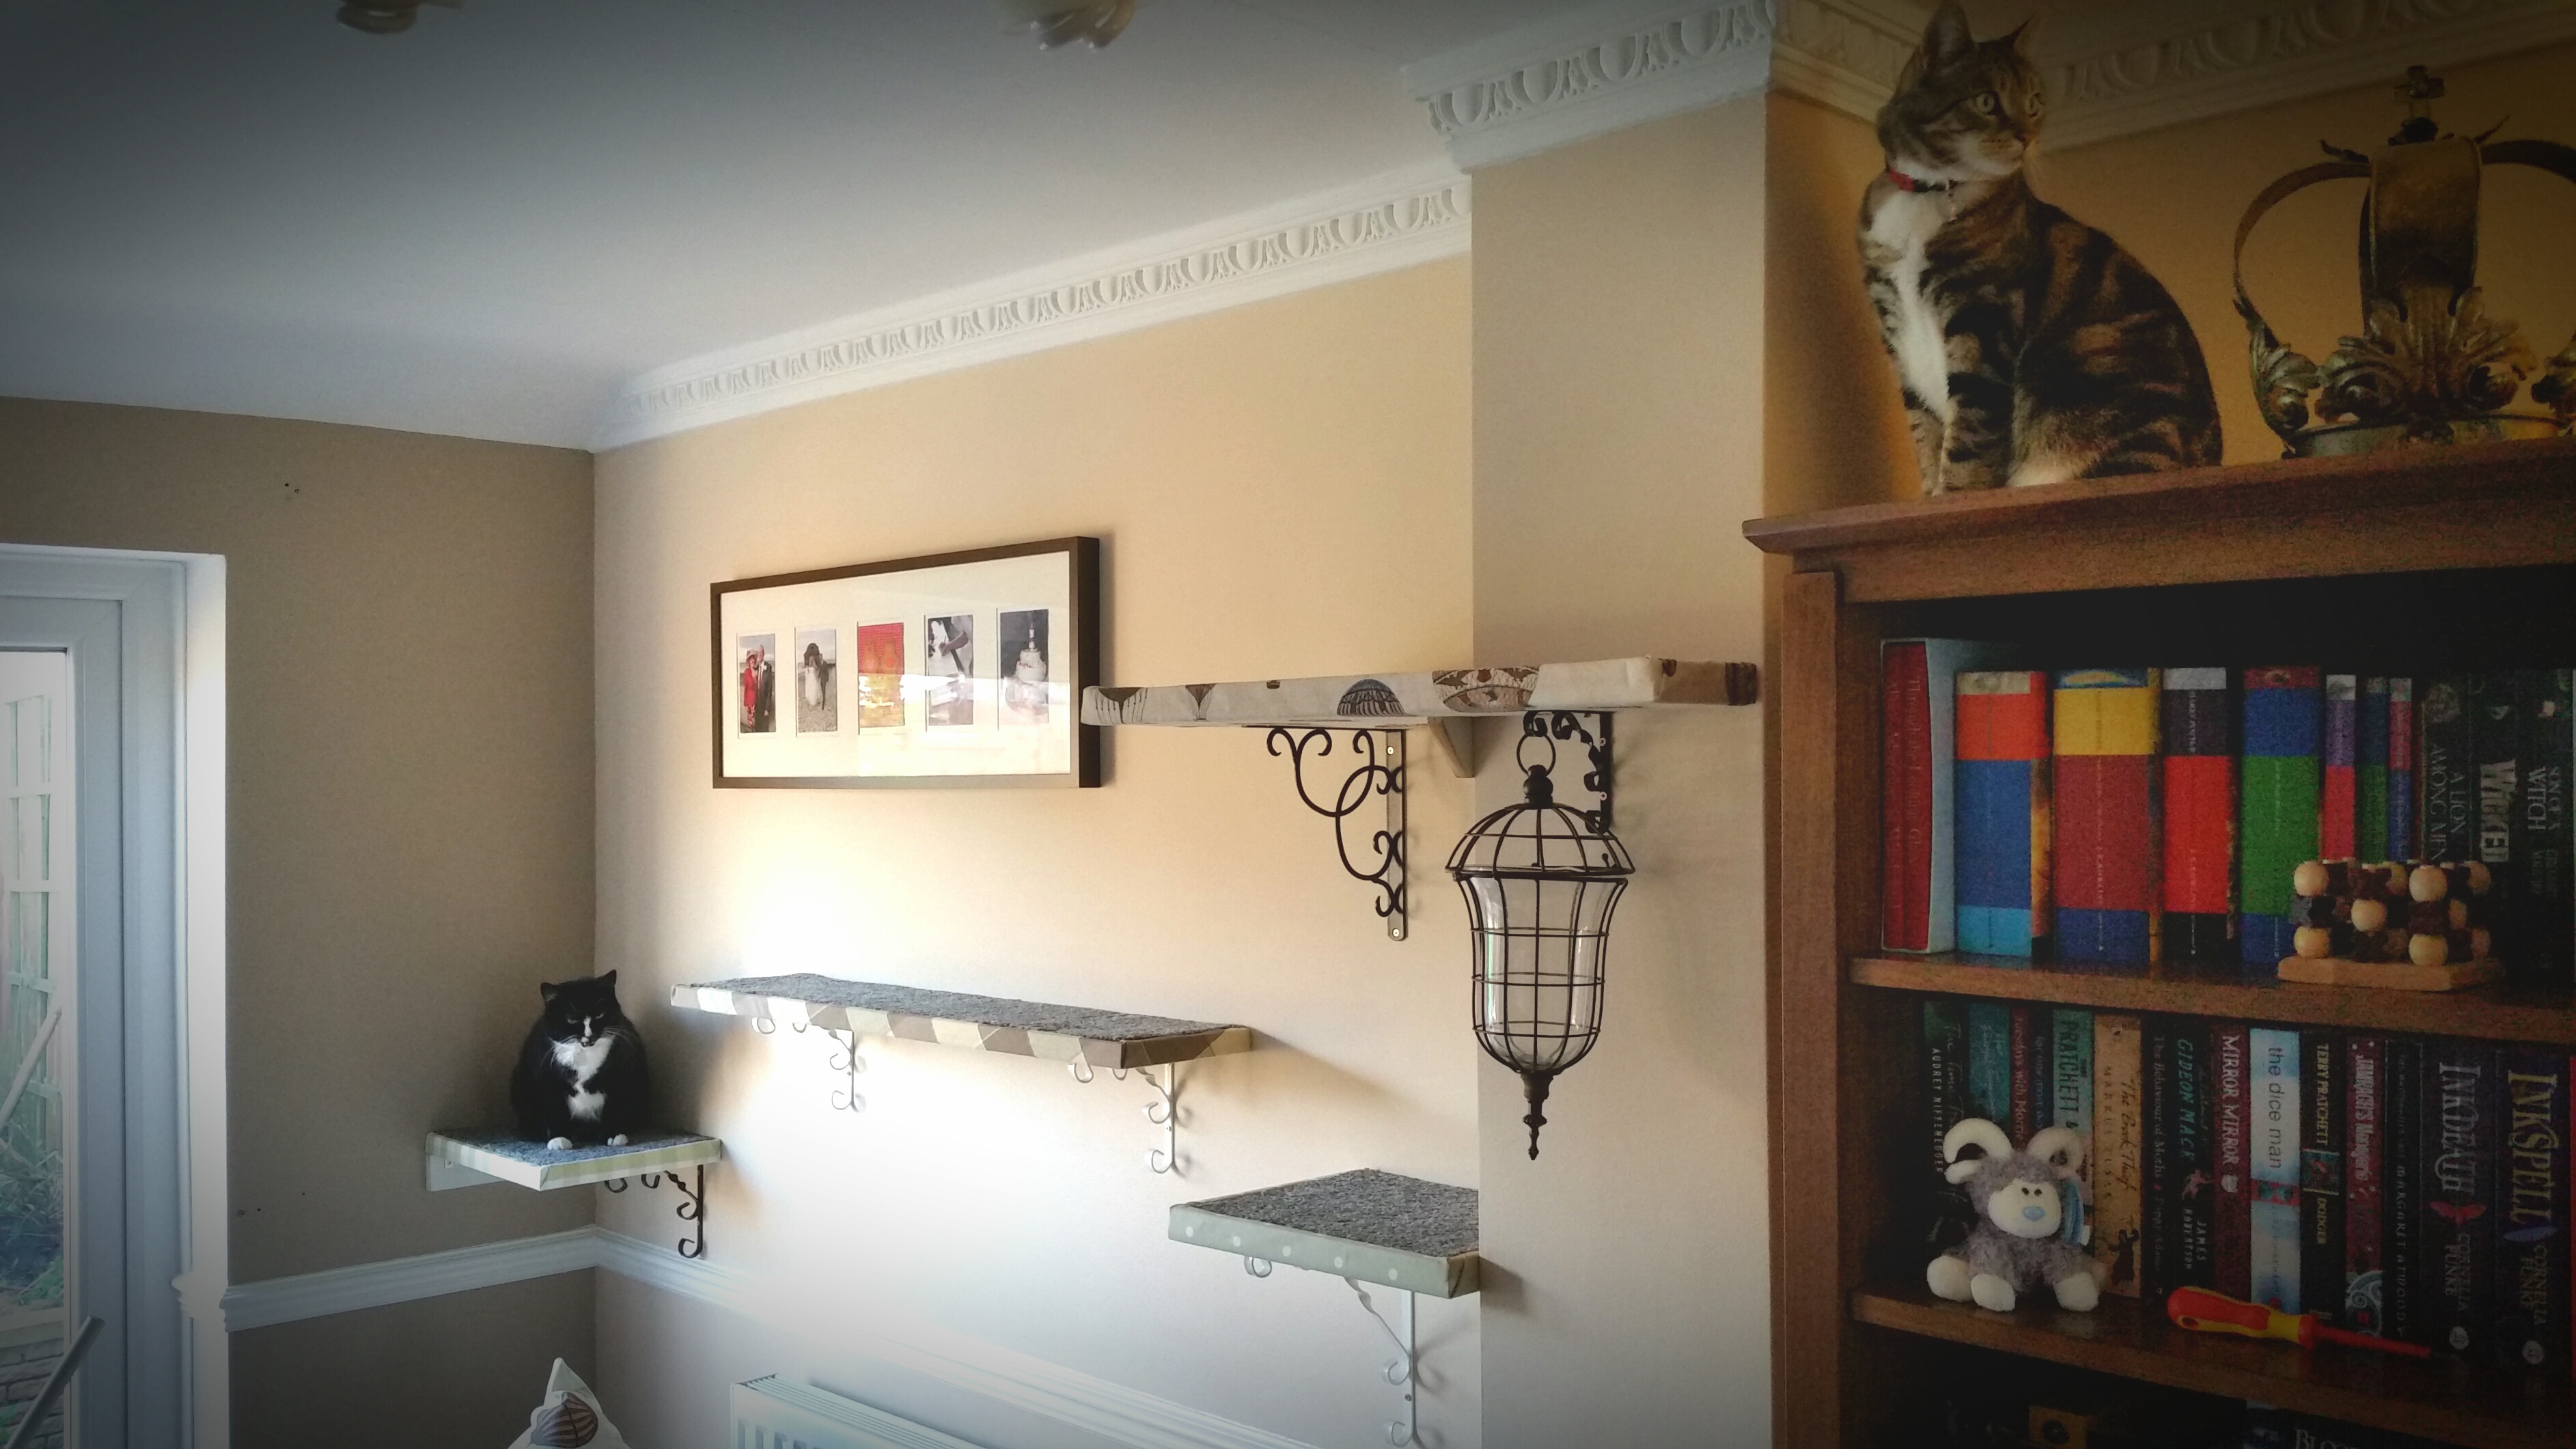 Best ideas about DIY Cat Wall Shelves . Save or Pin How to Make Homemade DIY Cat Shelves Now.